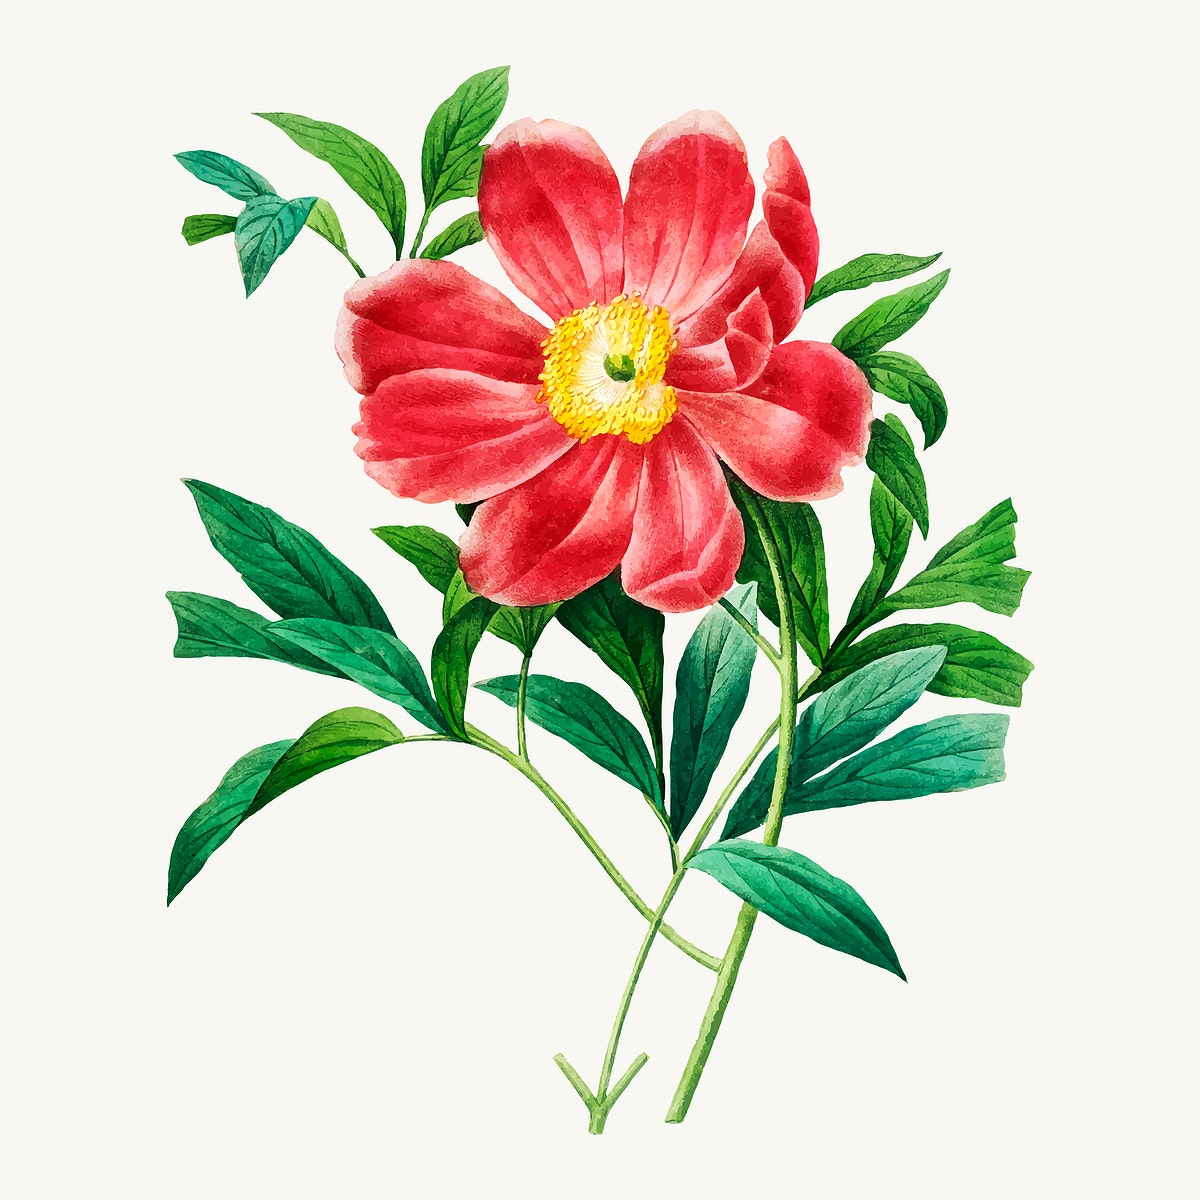 Red peony botanical vector, remixed from artworks by Pierre-Joseph Redouté